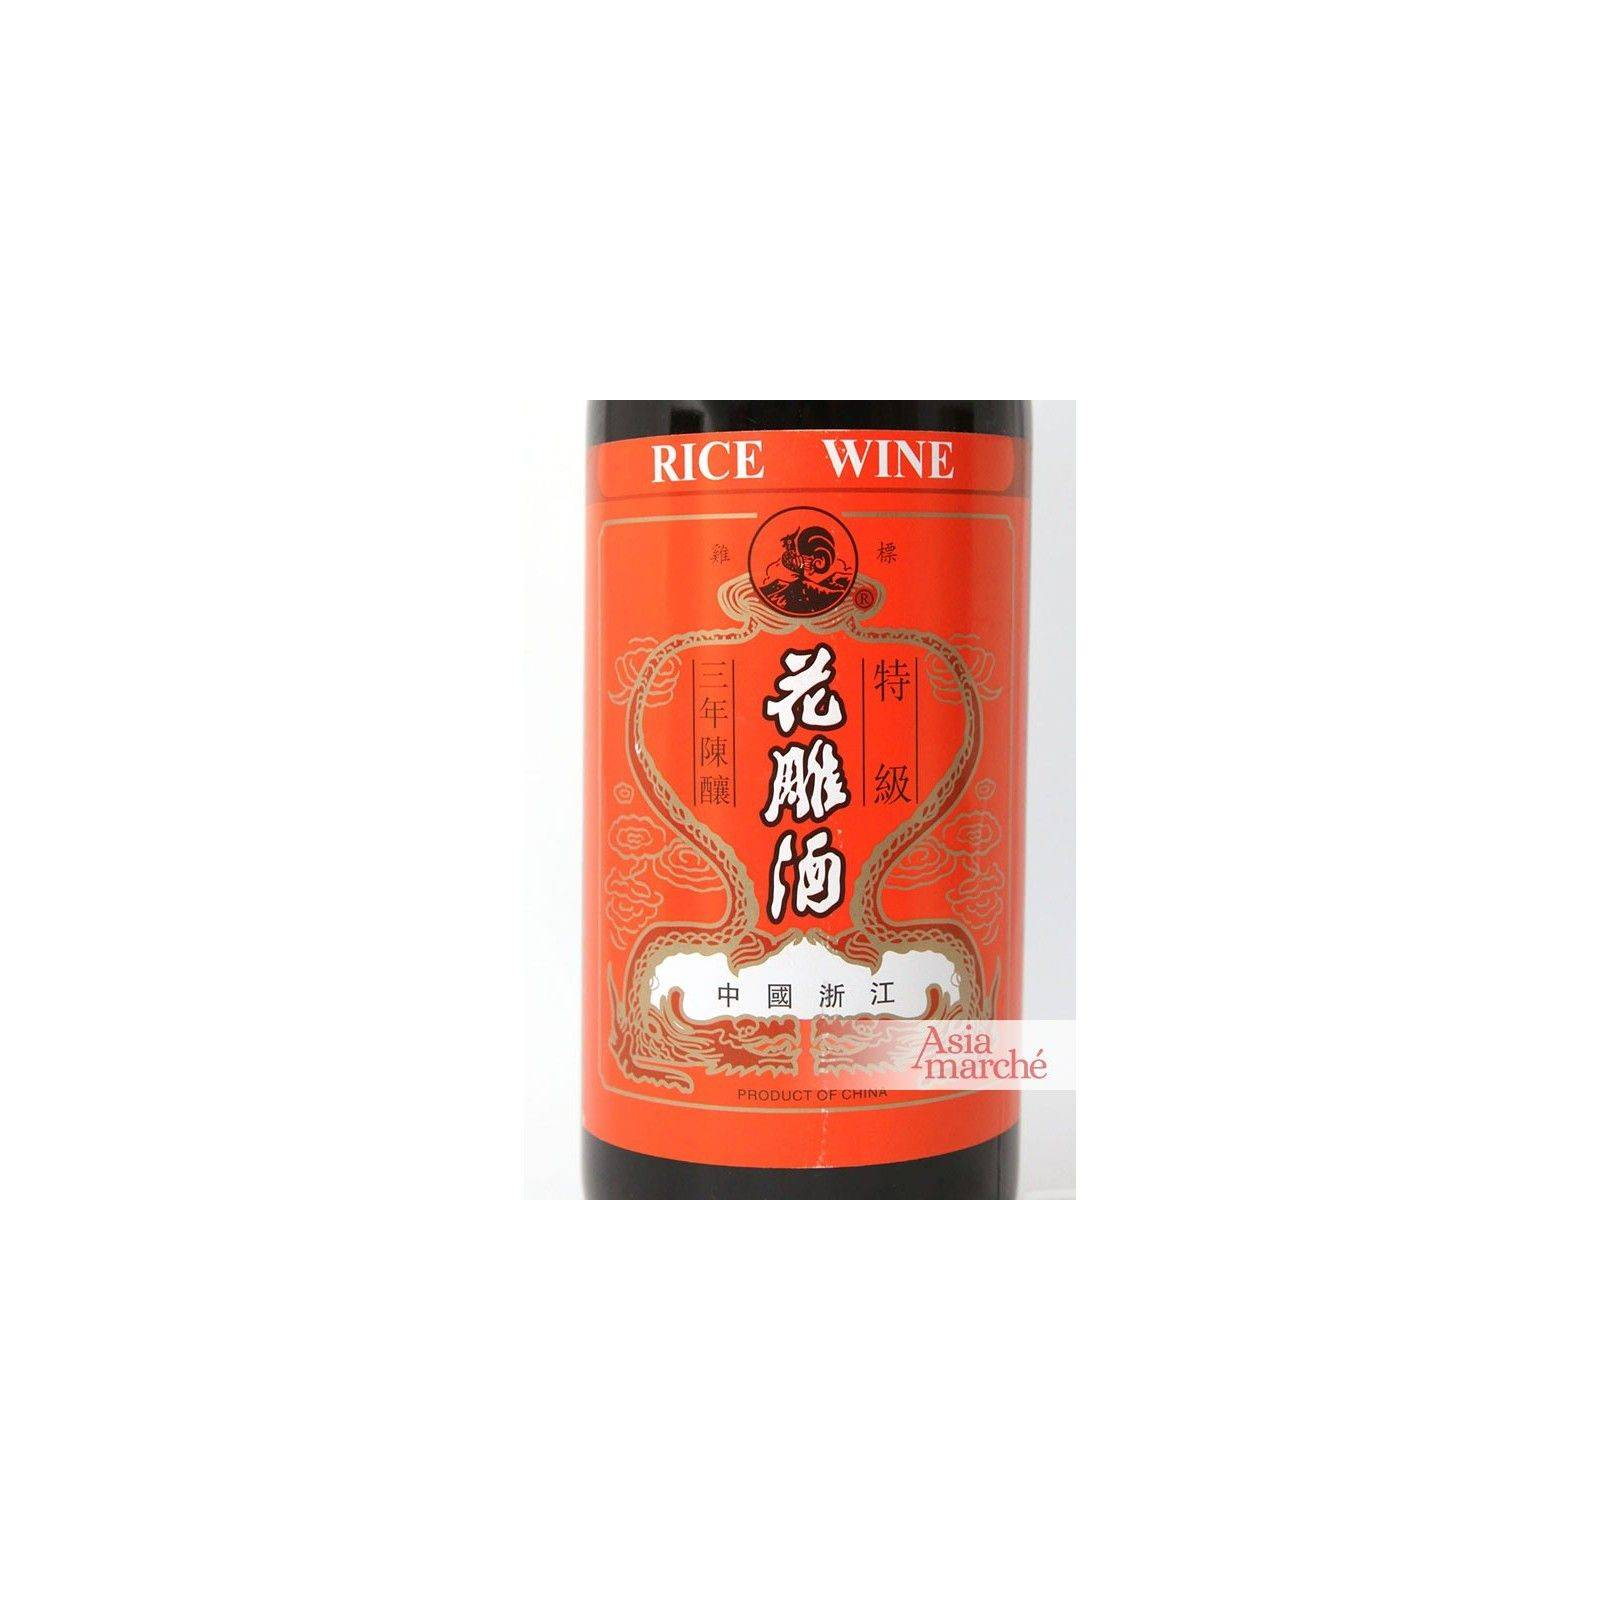 Asia Marché Vin de cuisson (Cooking Wine) Shao Hsing 75cl Pagoda